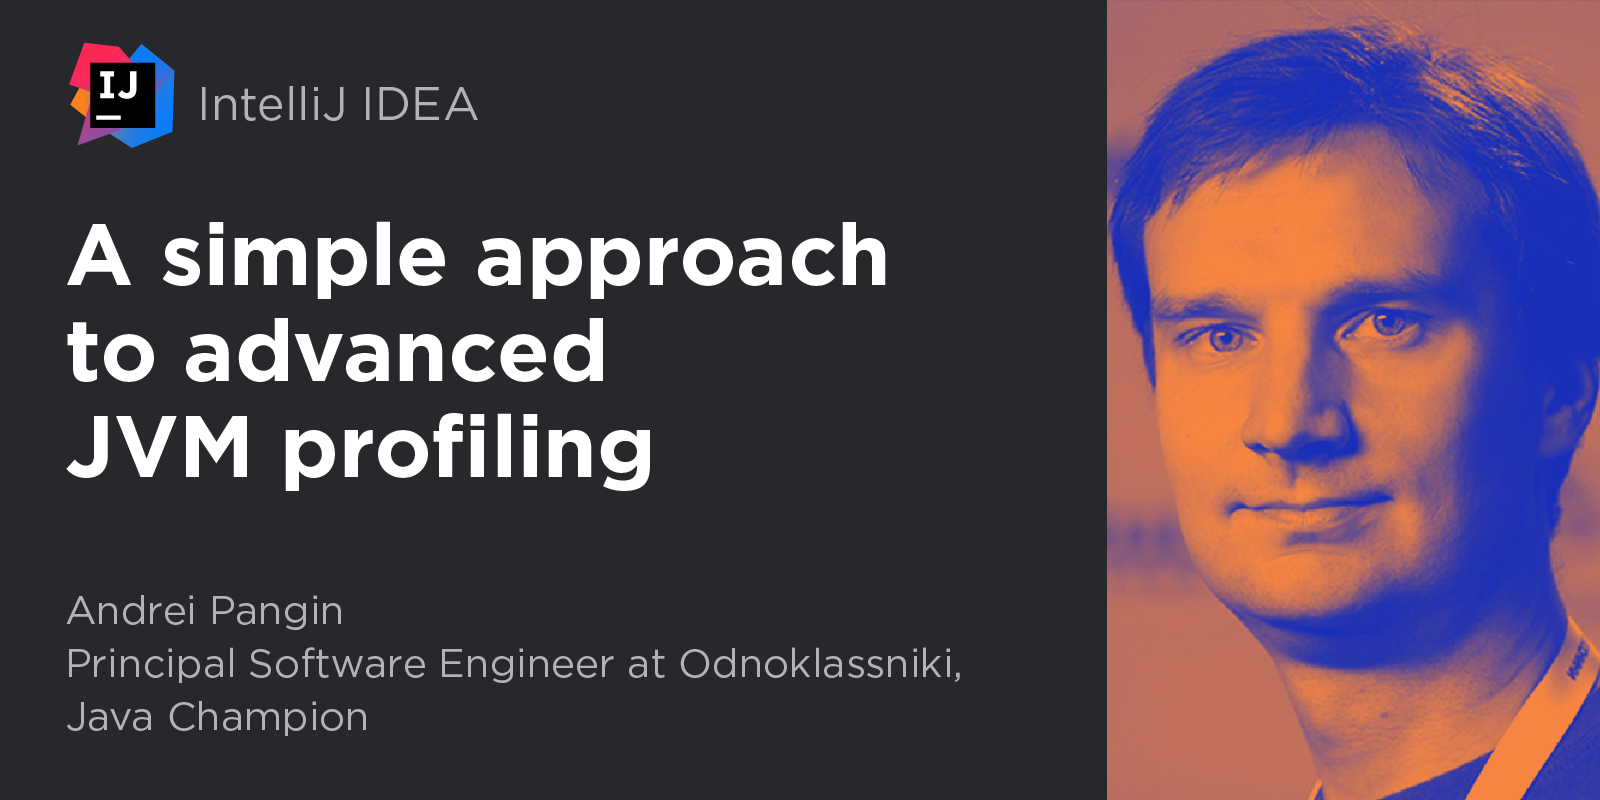 A simple approach to the advanced JVM profiling